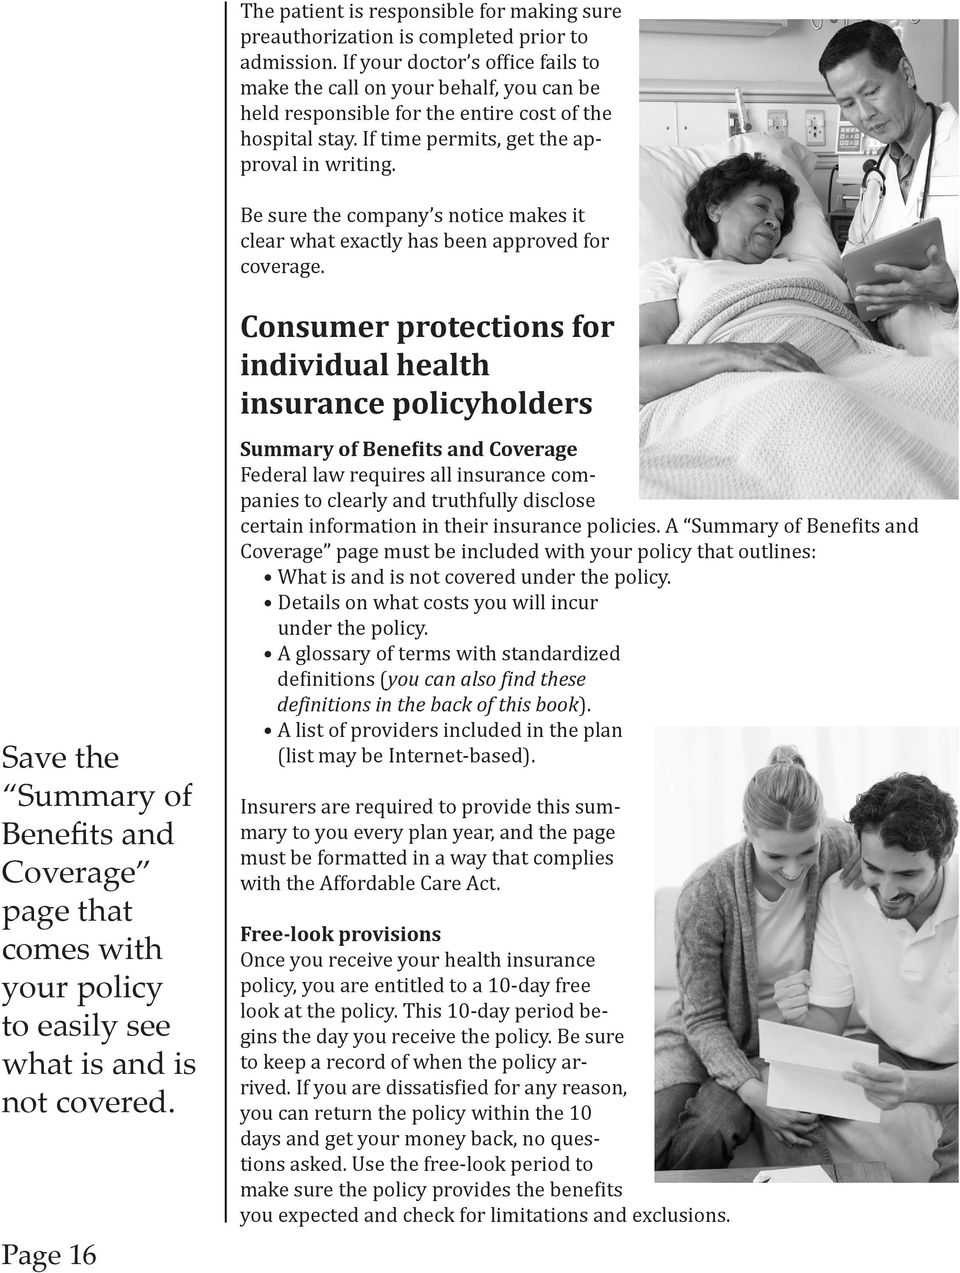 Be sure the company s notice makes it clear what exactly has been approved for coverage.